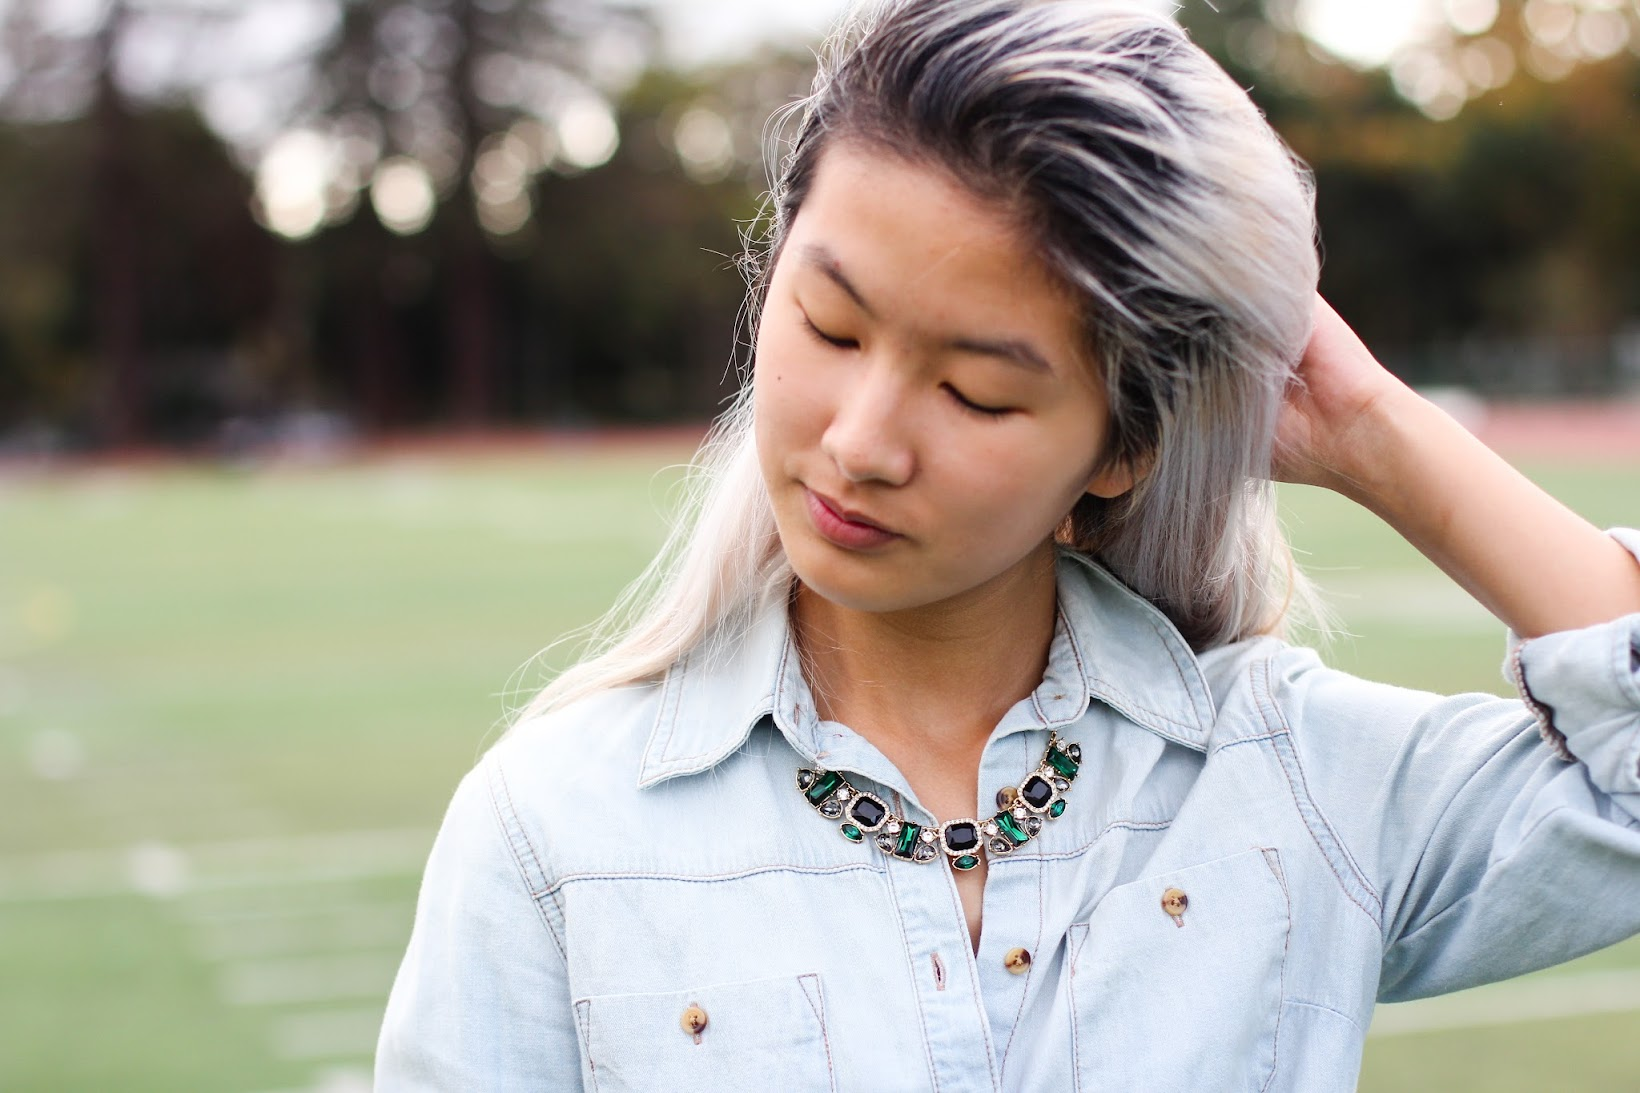 A detail shot of a statement necklace under the collar of a denim top.